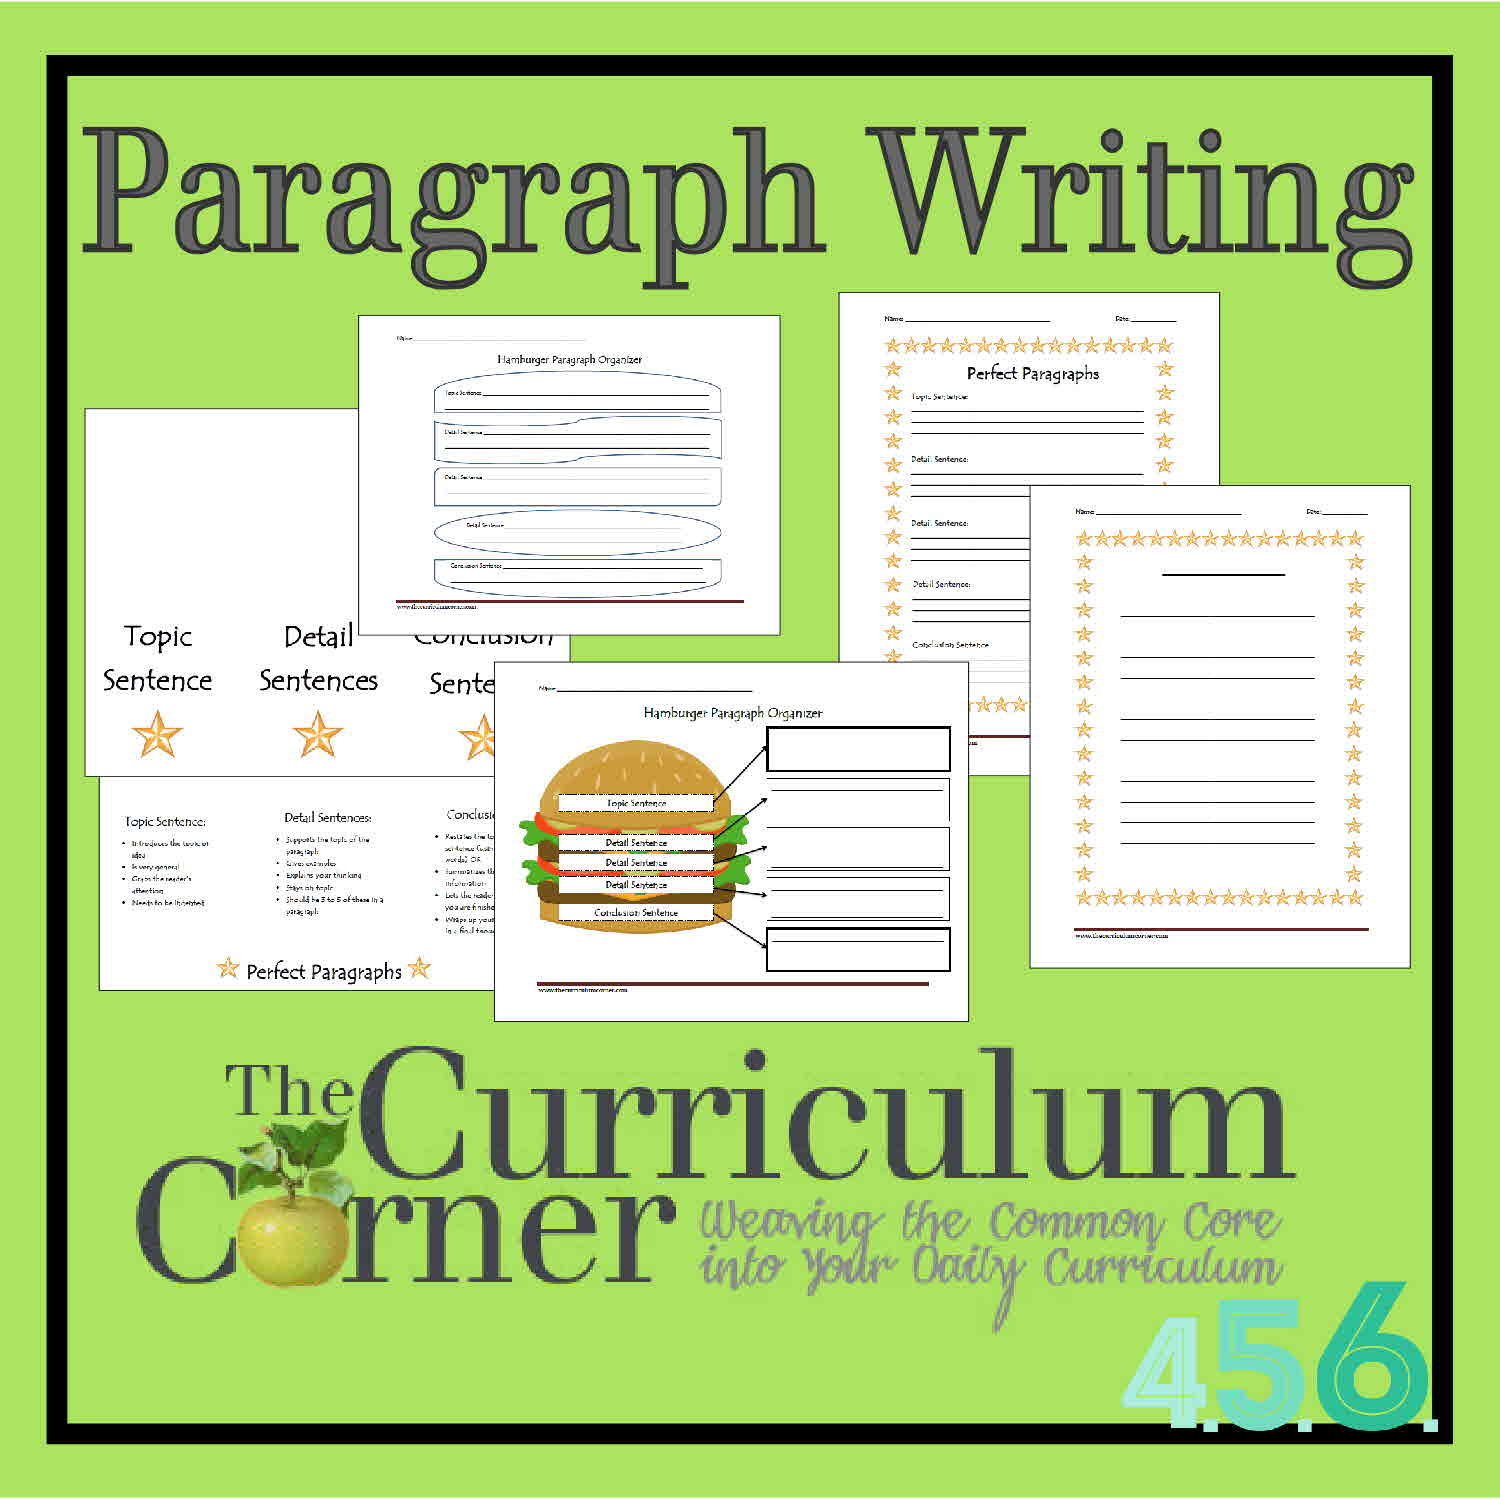 Paragraph Writing - The Curriculum Corner 4-5-6 | Free Printable Paragraph Writing Worksheets